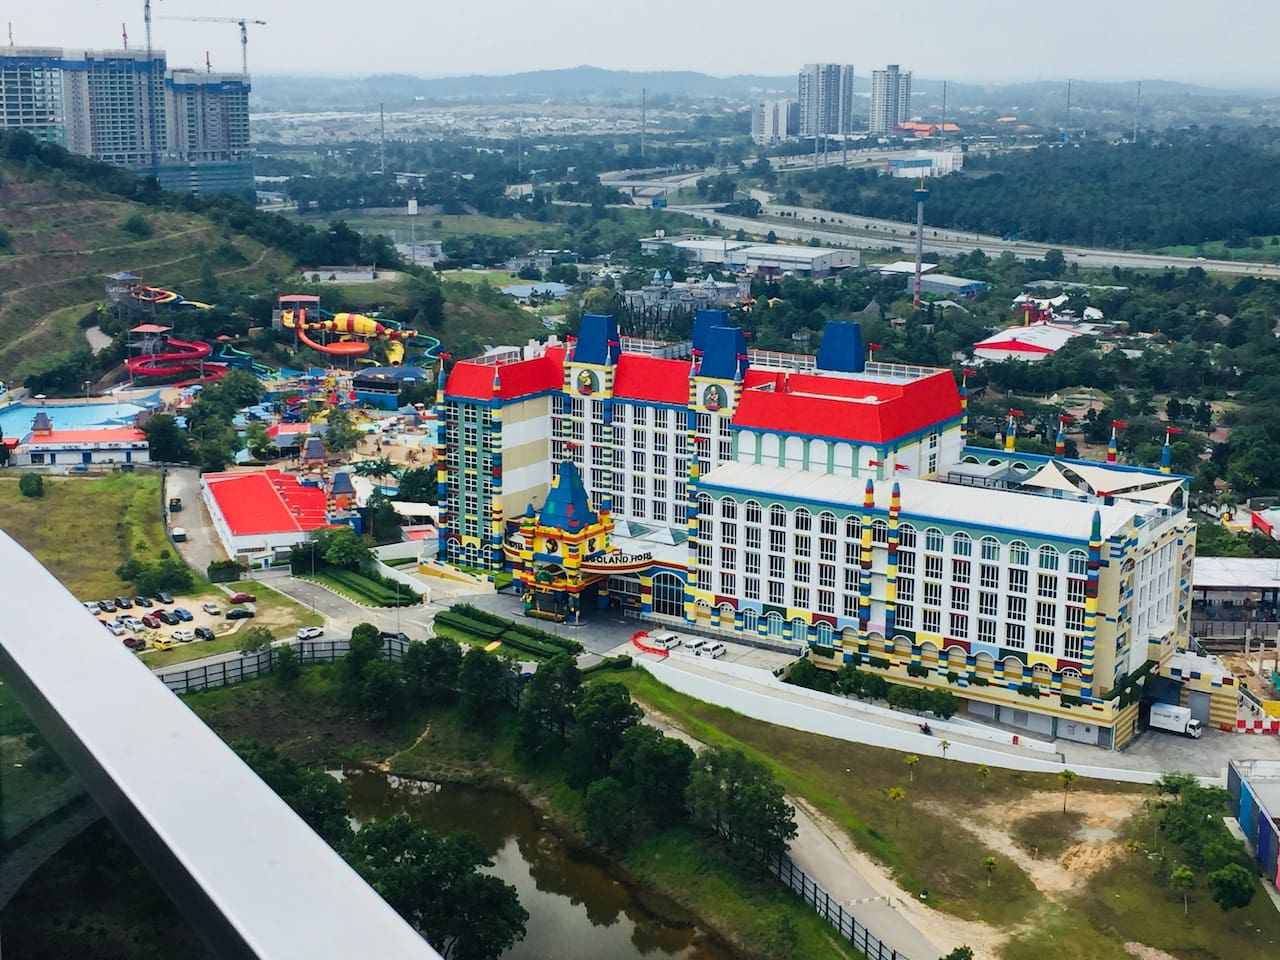 Awesome Legoland View from Unit!